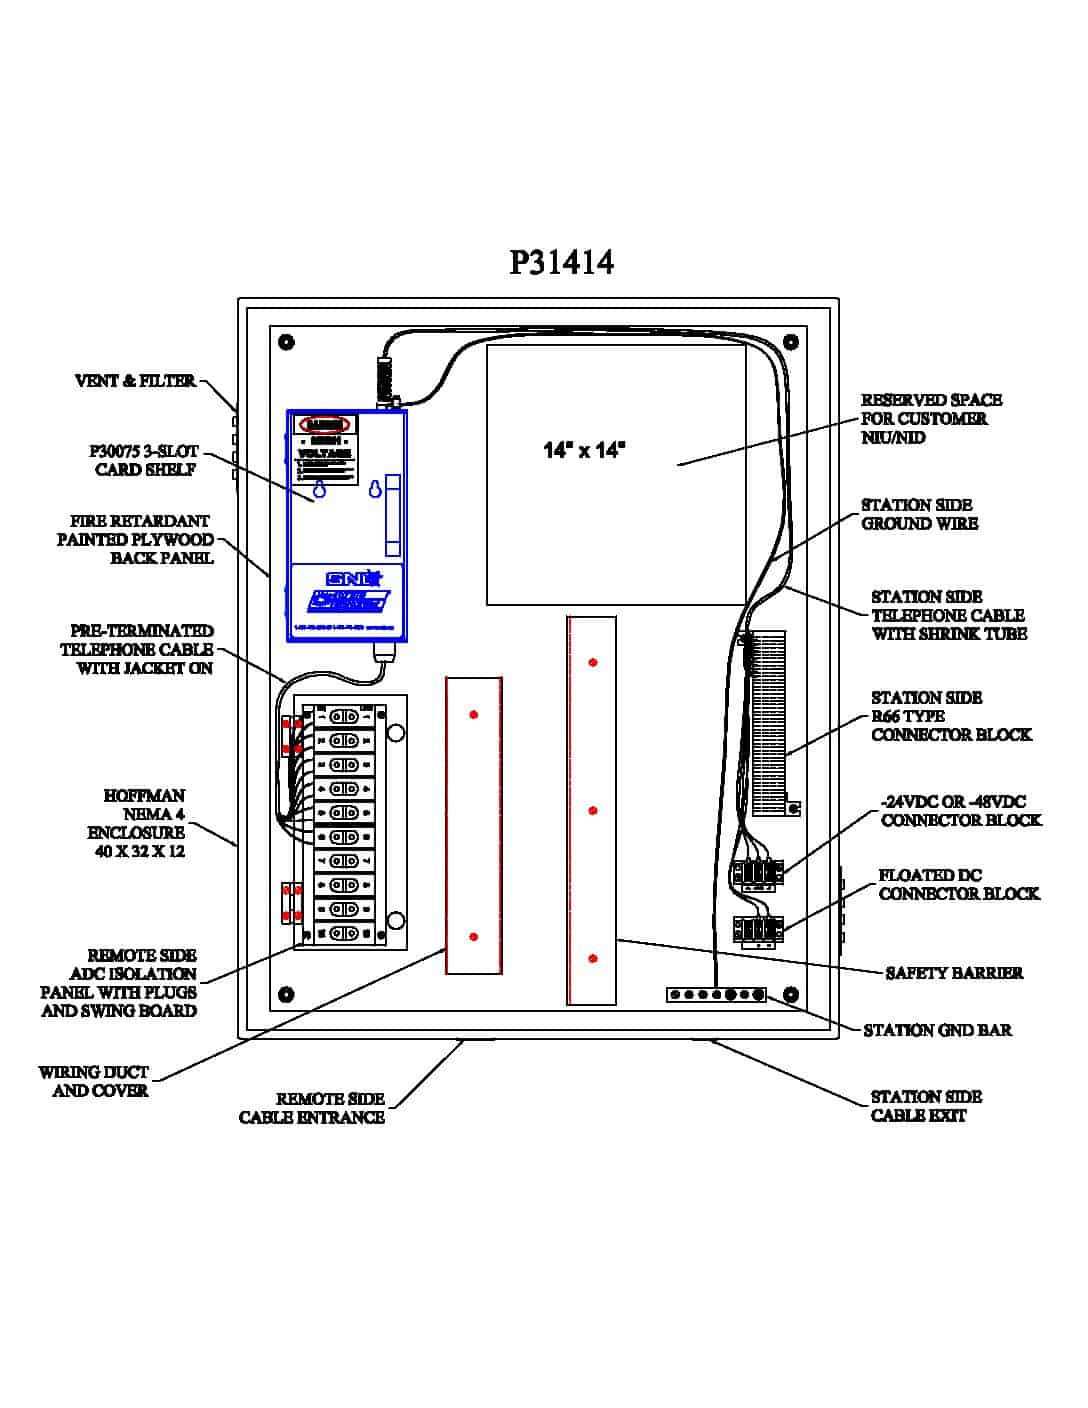 P31414 Turnkey Protection Packages – 3 slot PDF thumbnail